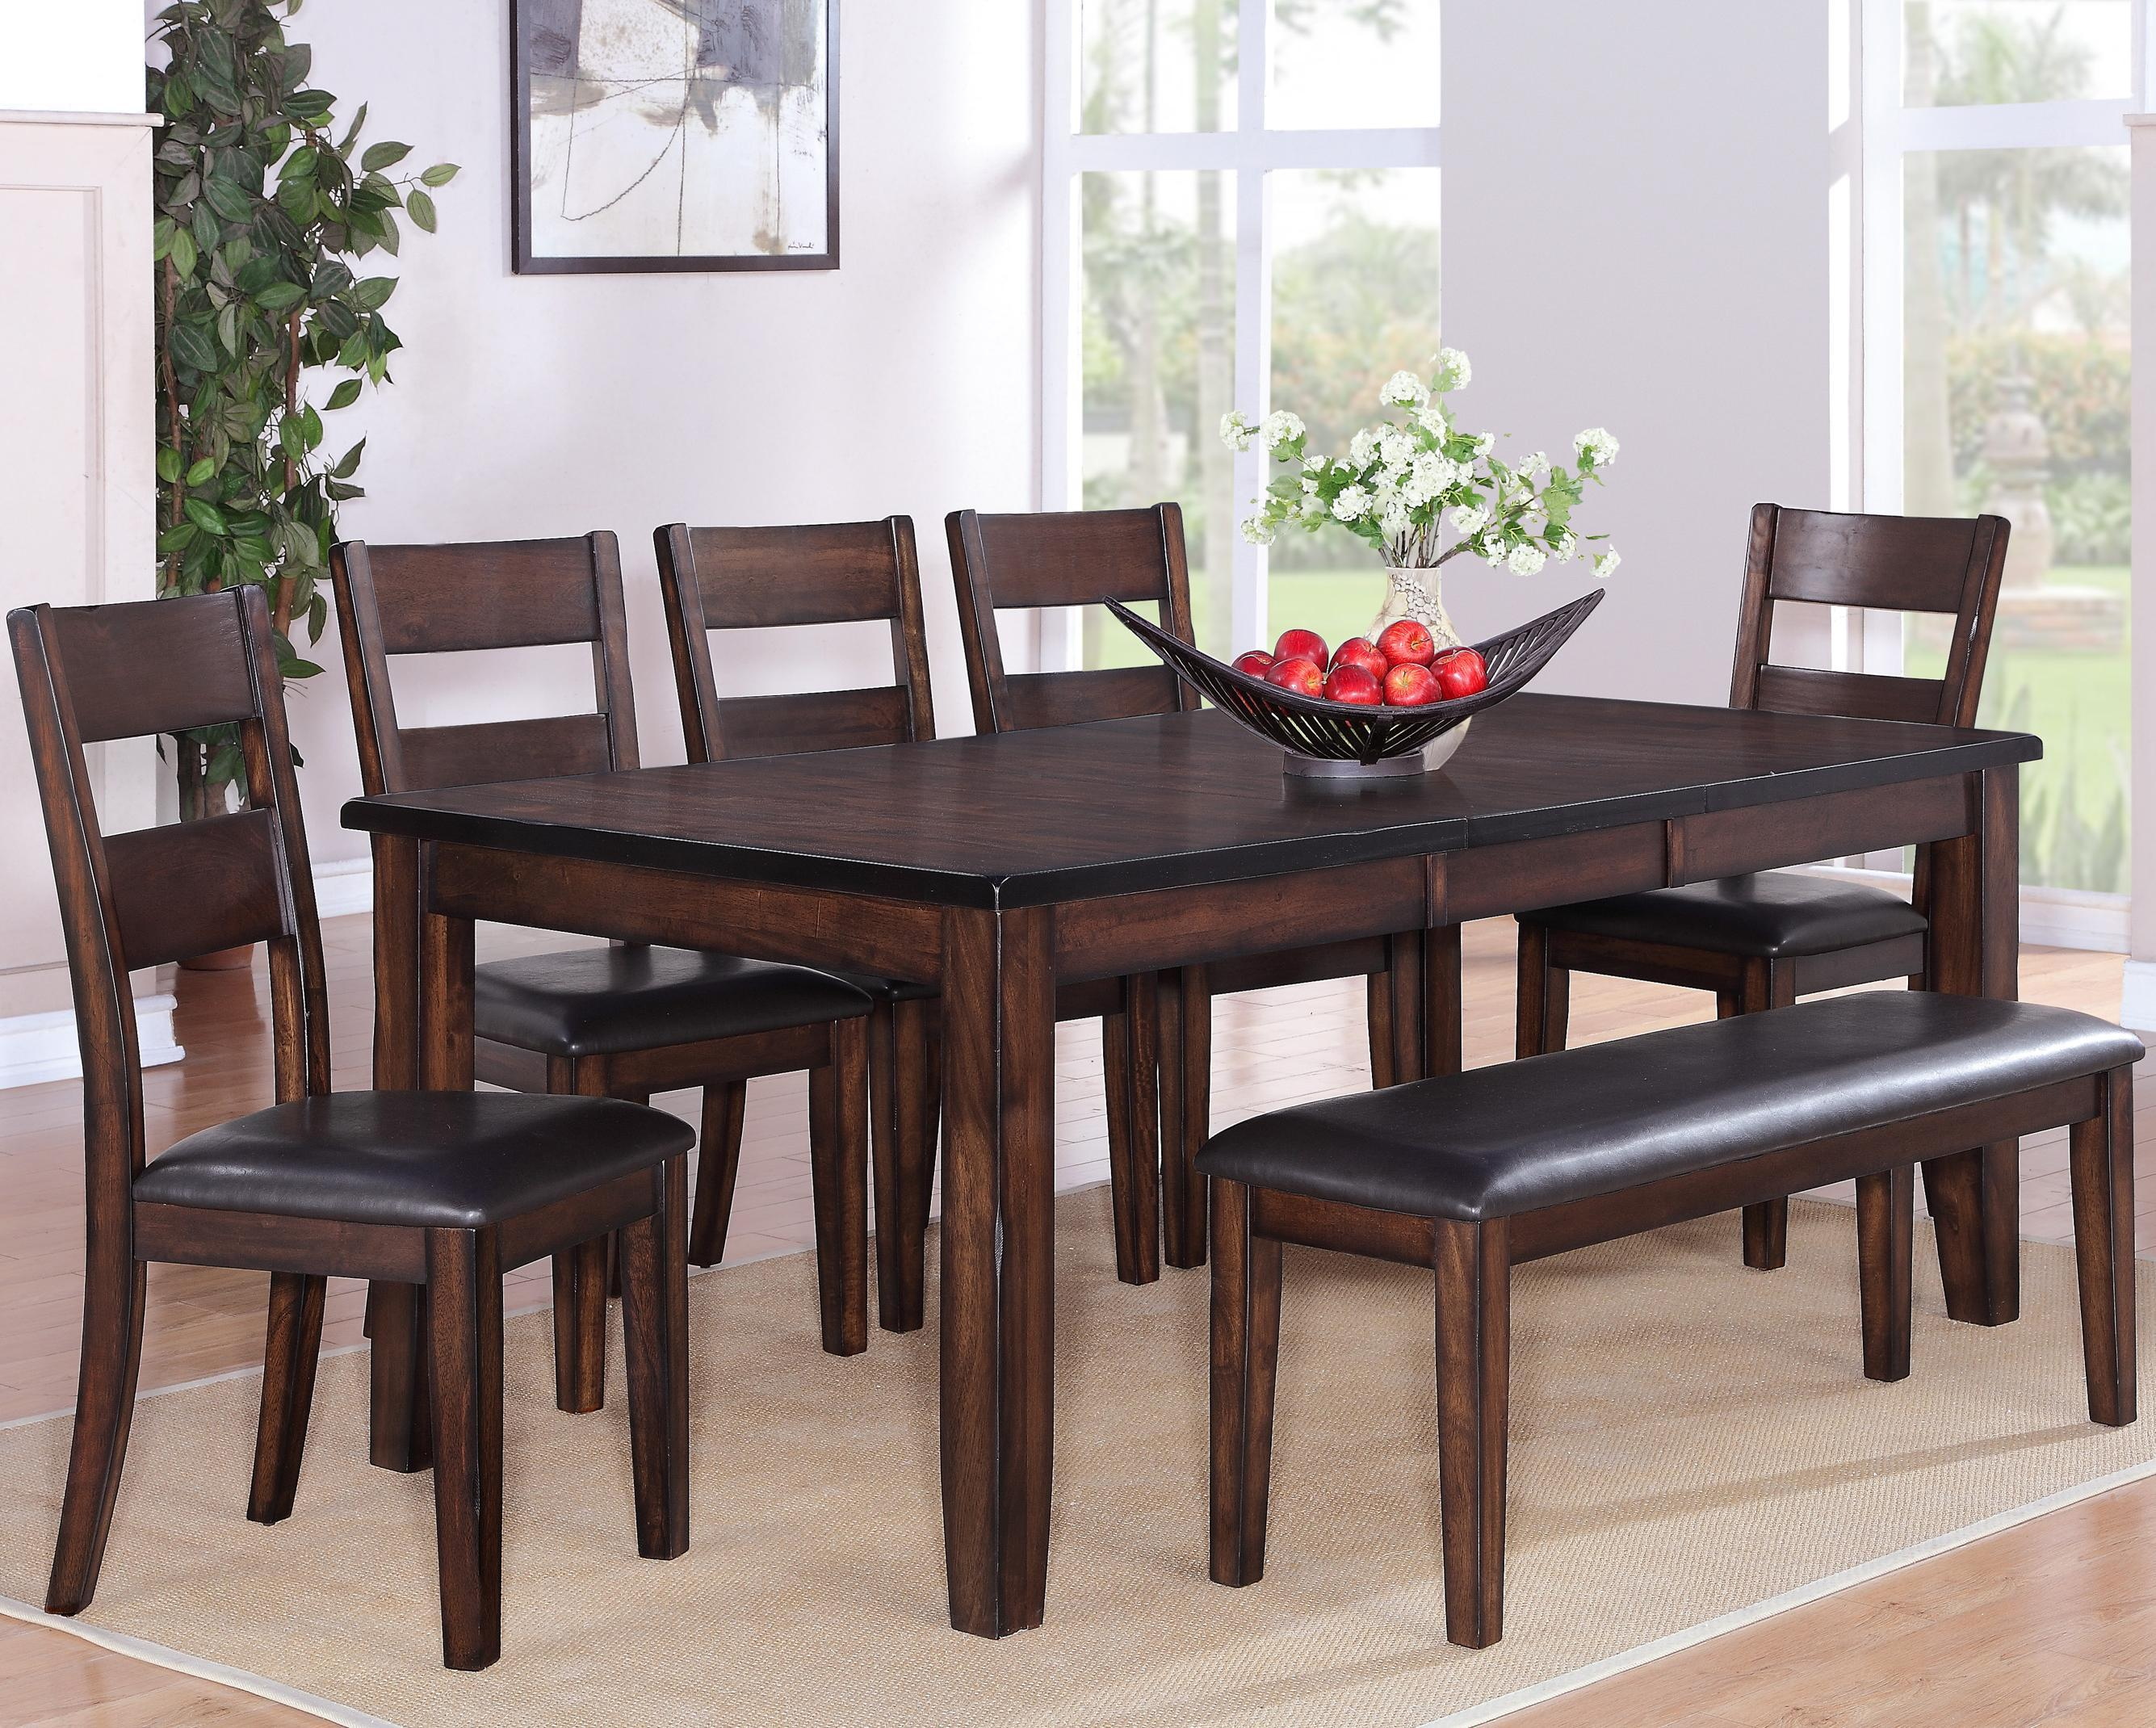 5PC Dining Table and Chairs